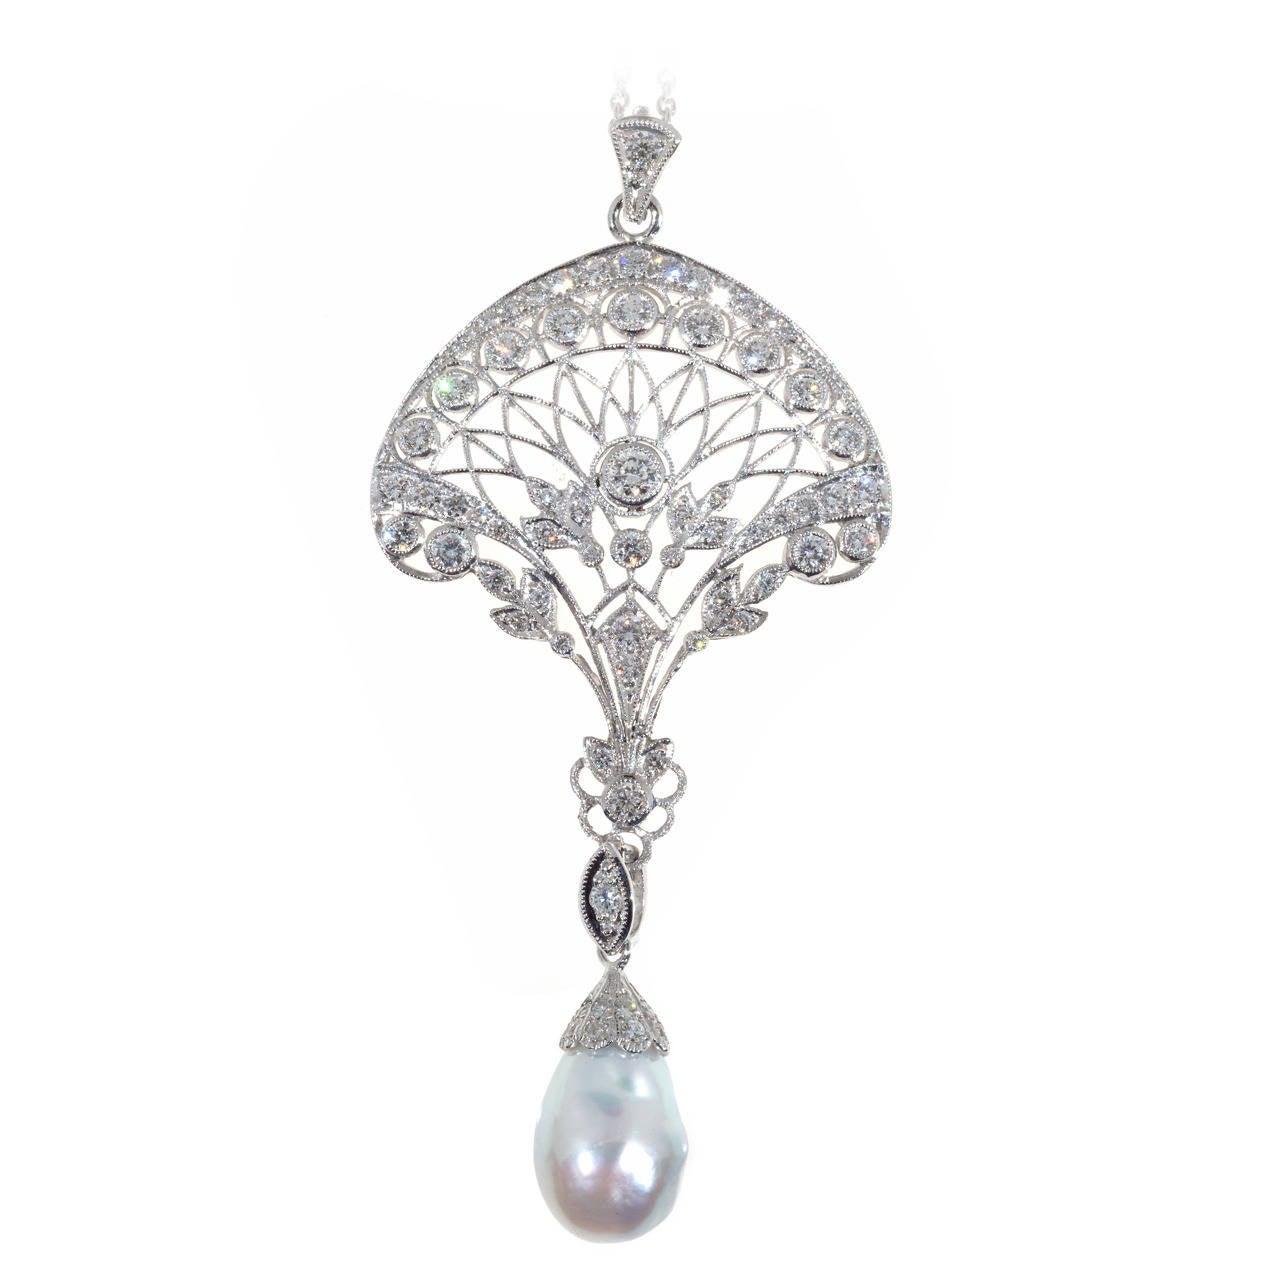 Edwardian South Sea Baroque Pearl Pave Diamond Platinum Pendant Chain